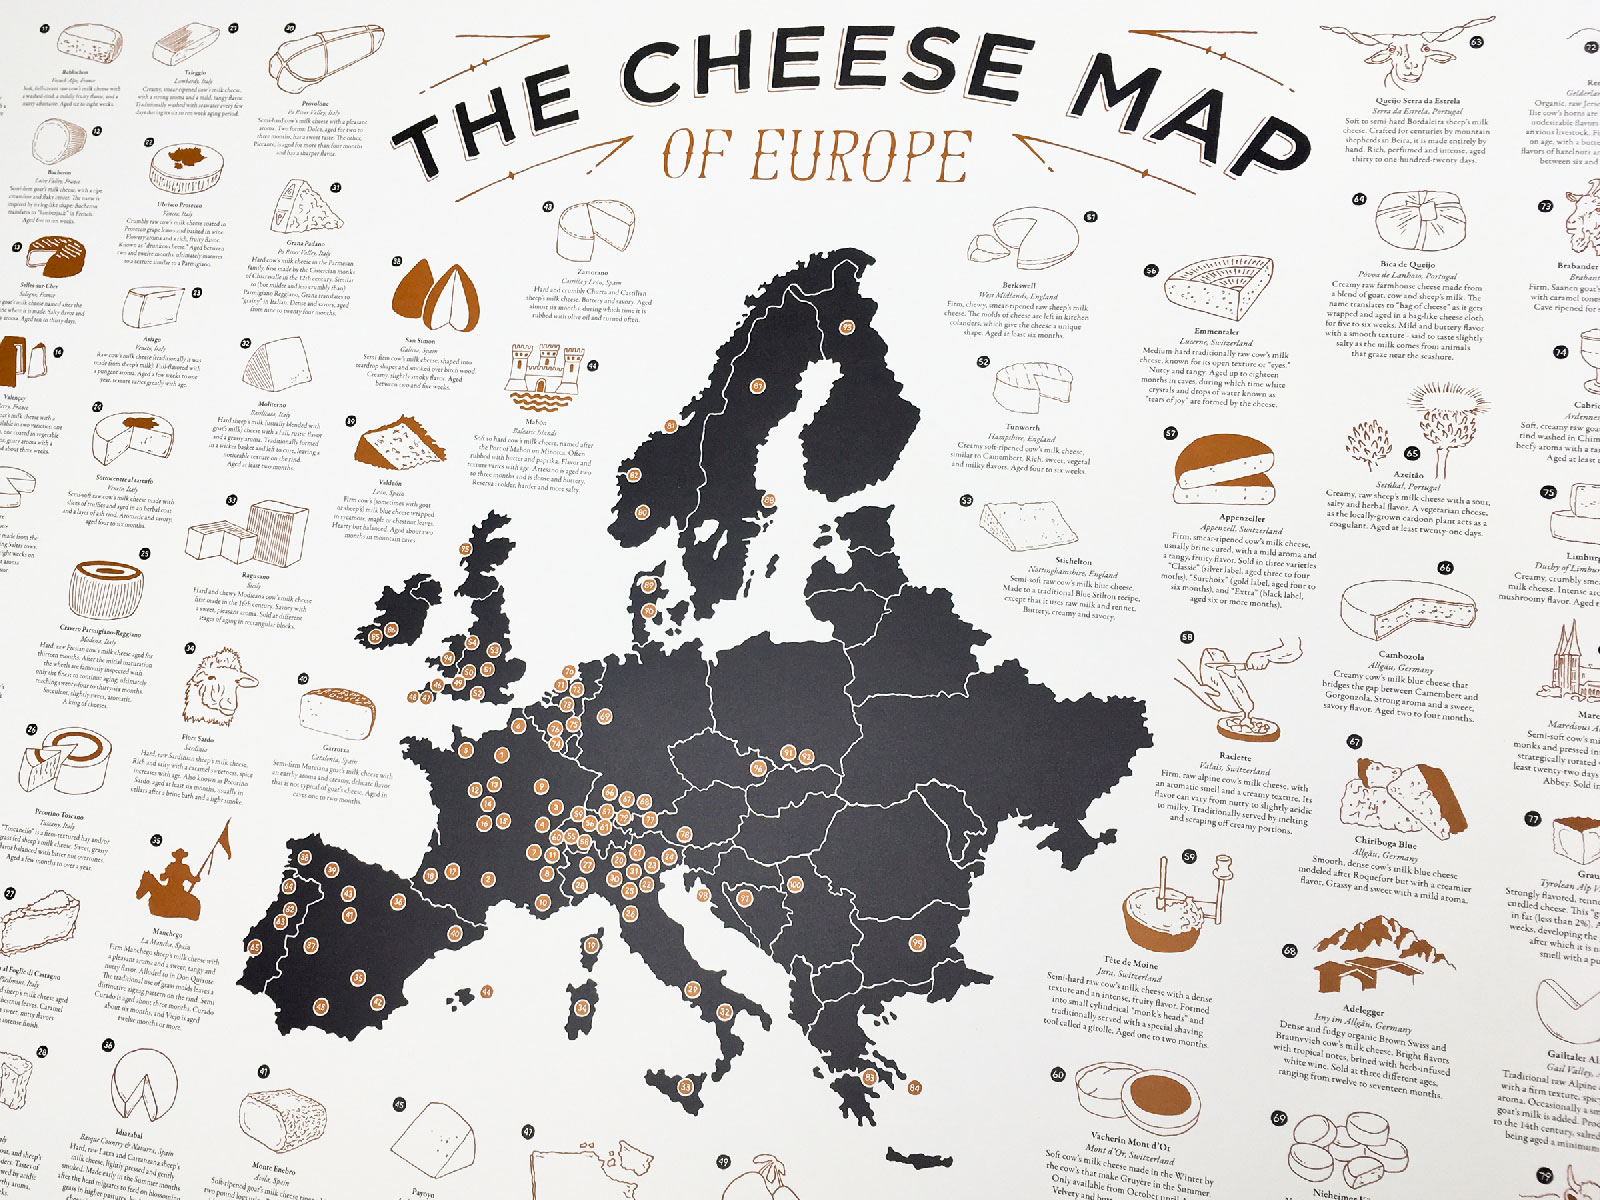 Frameable World Map.This Map Covers 100 Different European Cheeses On One Frameable